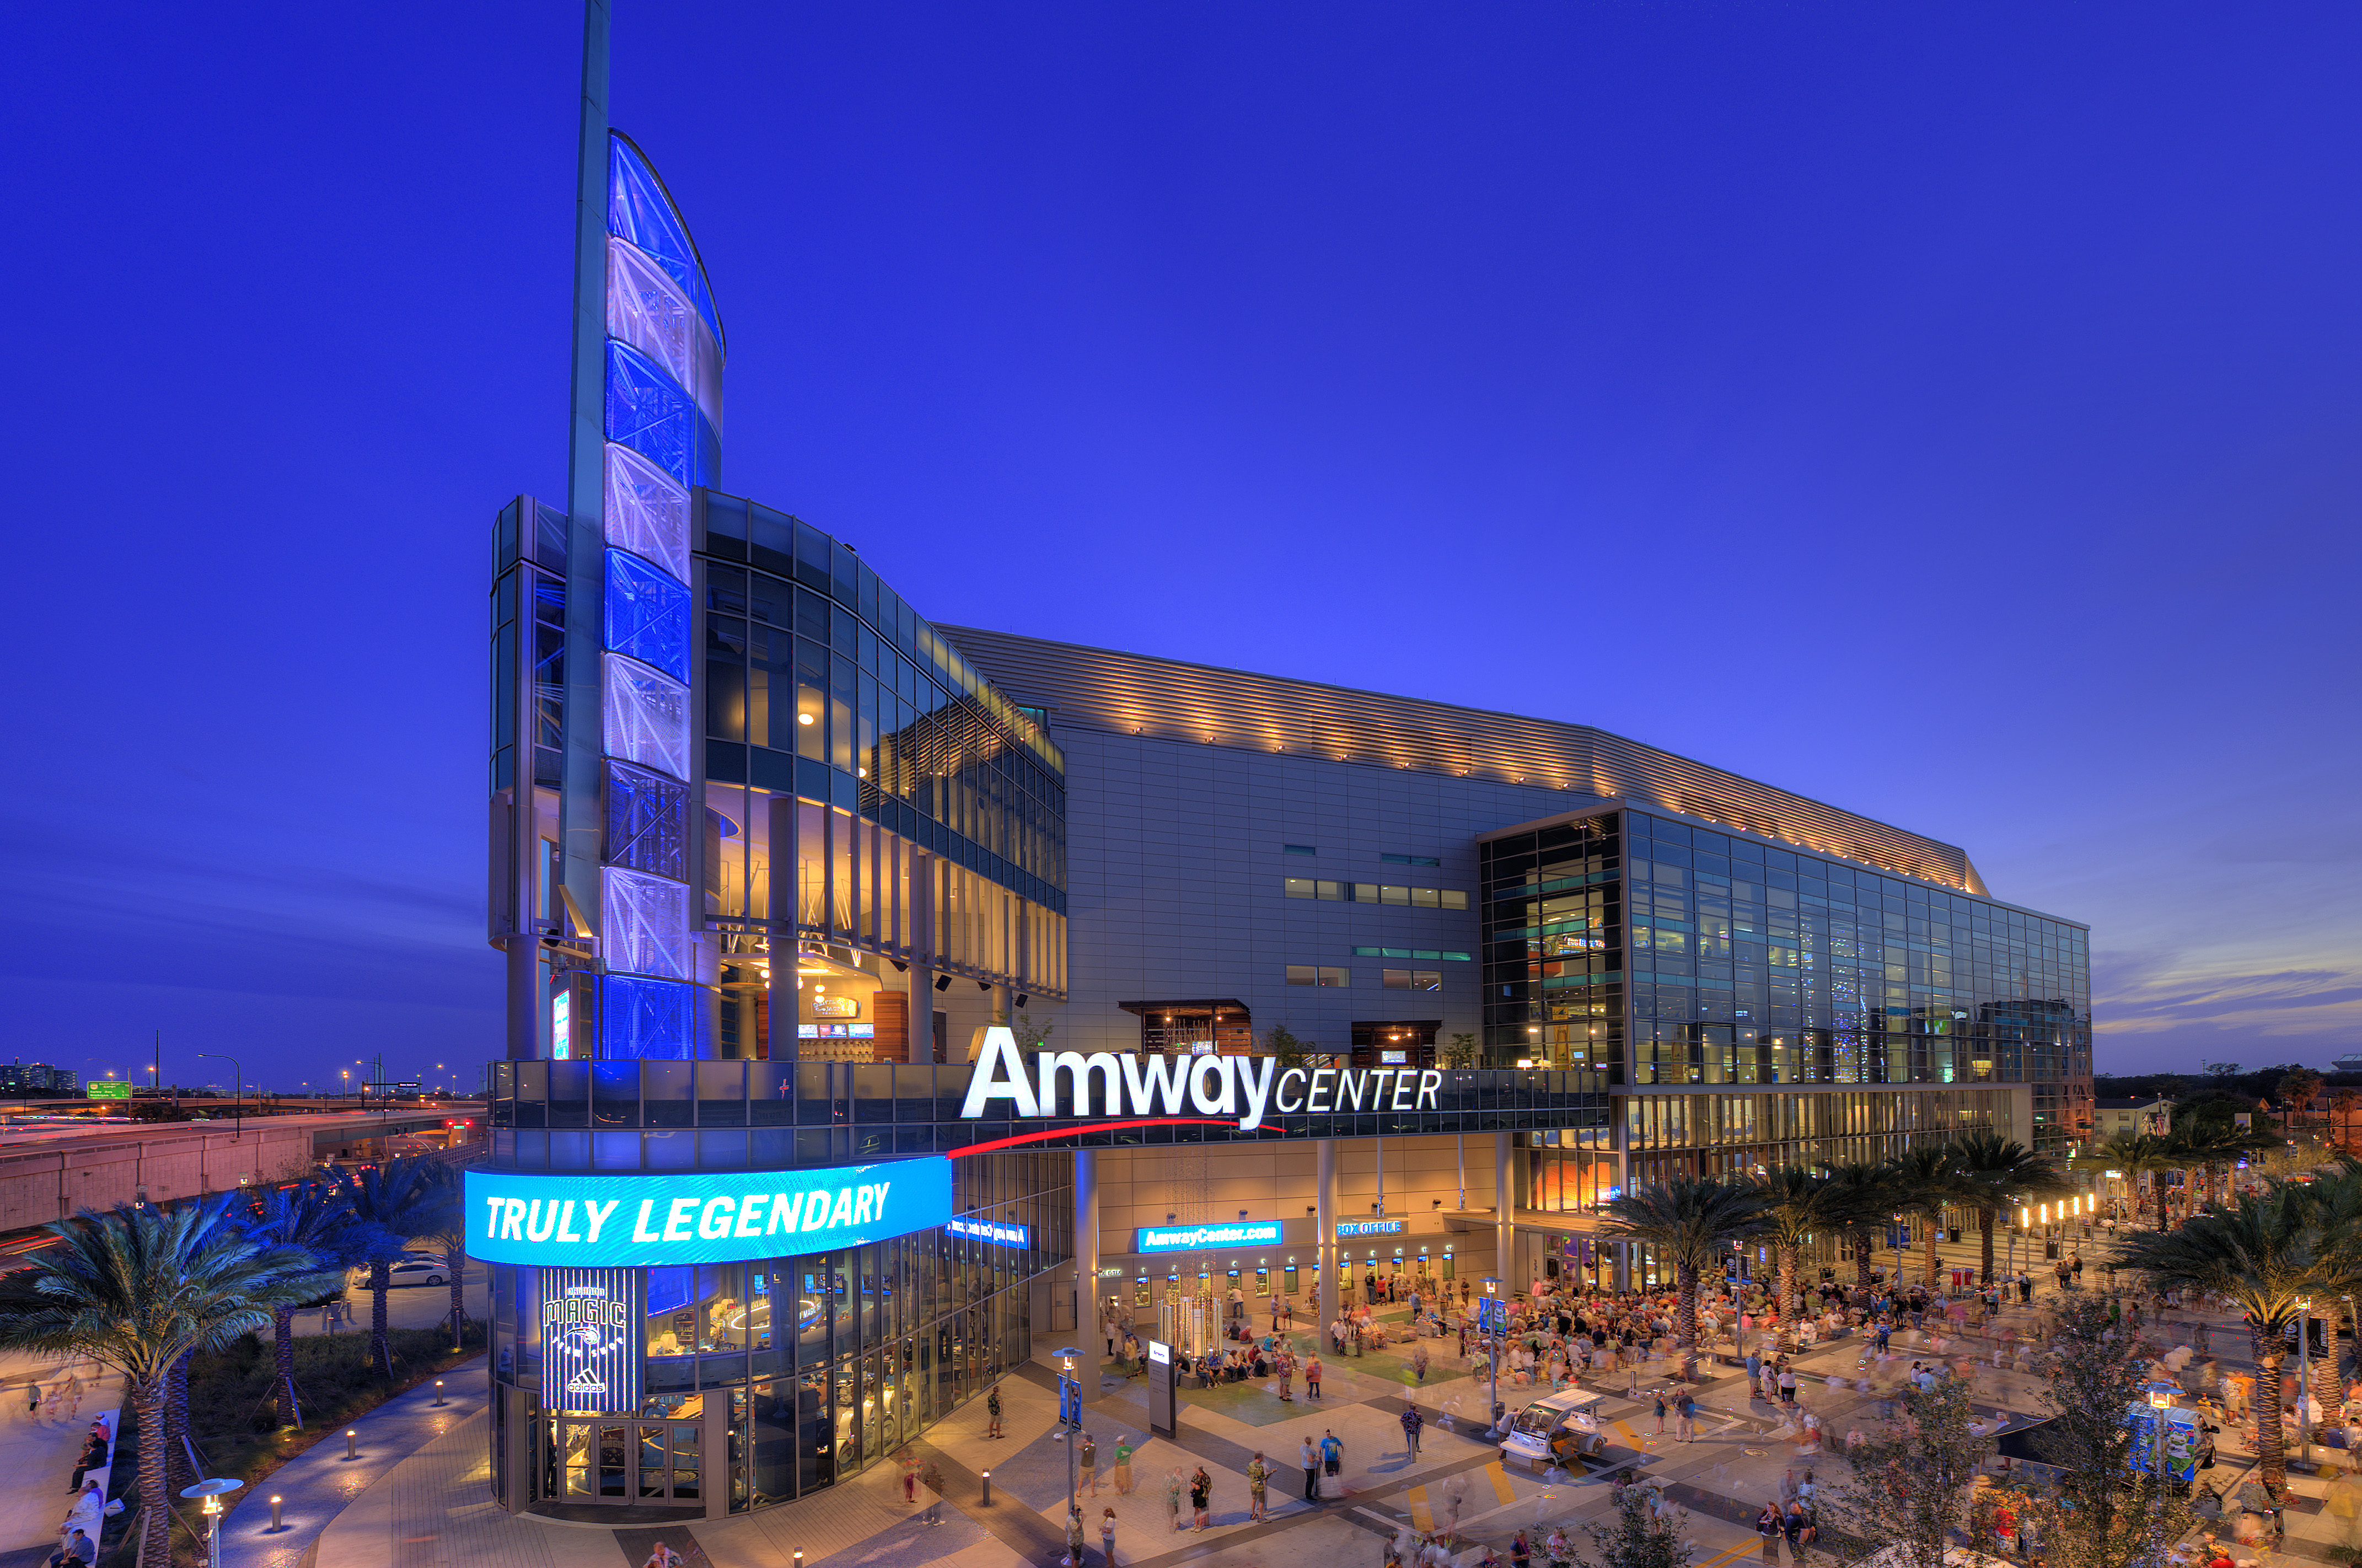 Hotels near Amway Center | Sheraton Orlando North Hotel